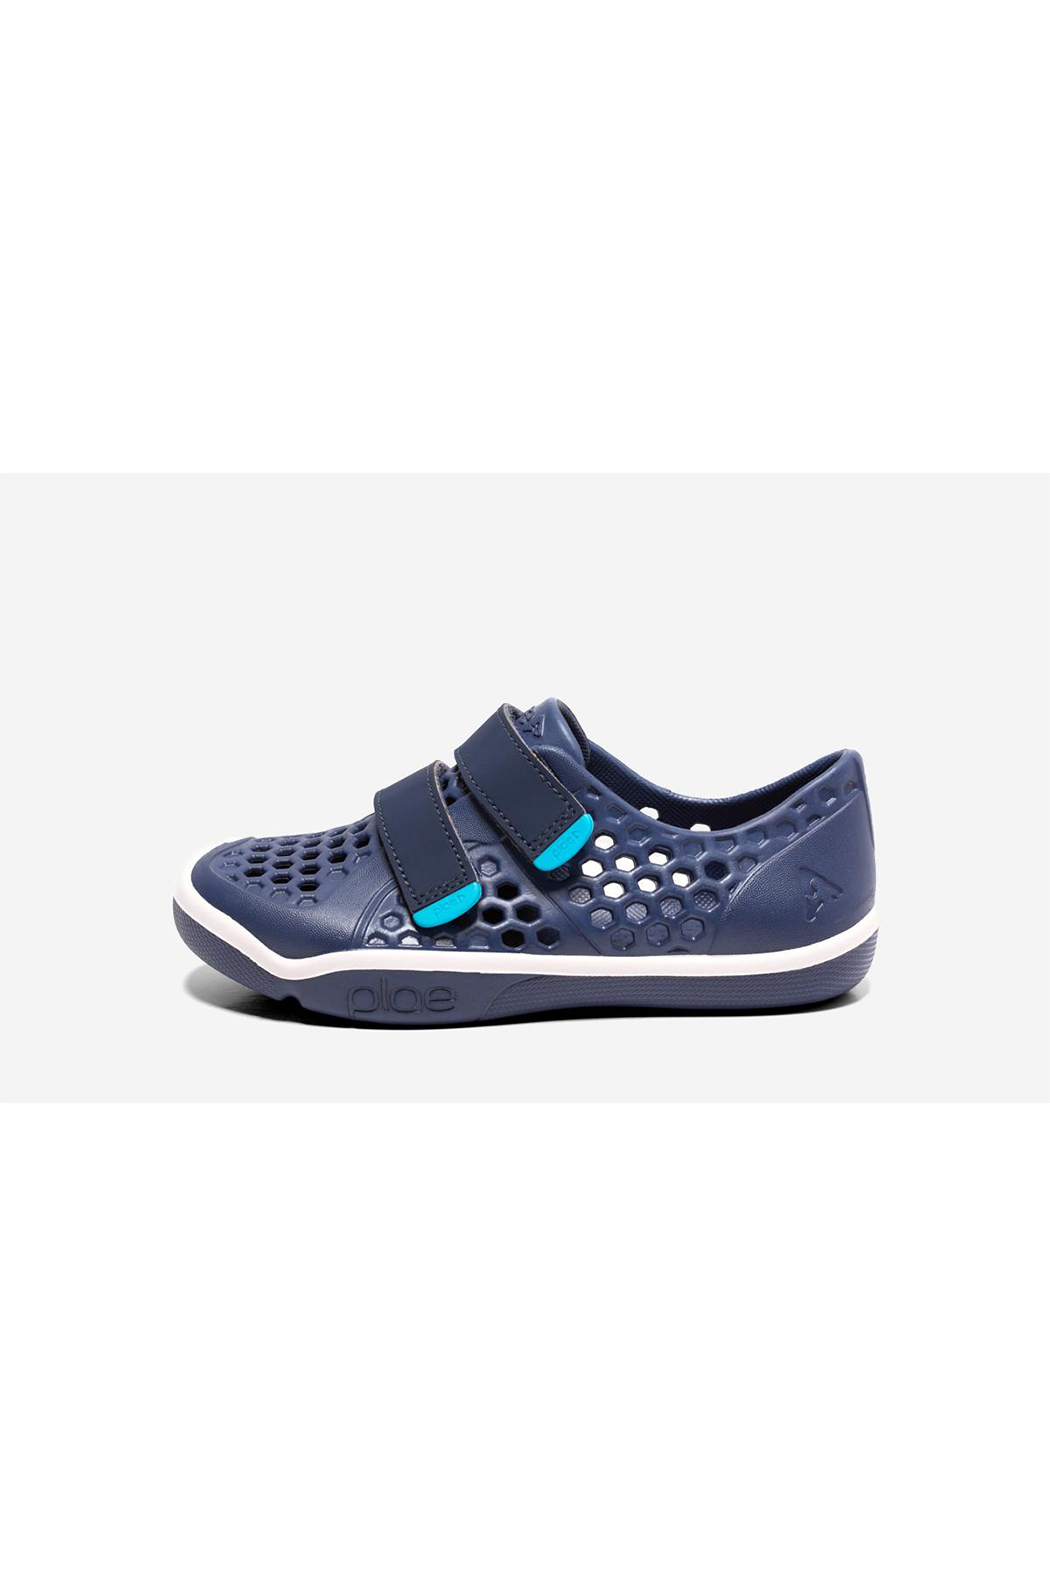 PLAE Mimo Youth Sandal - Front Cropped Image